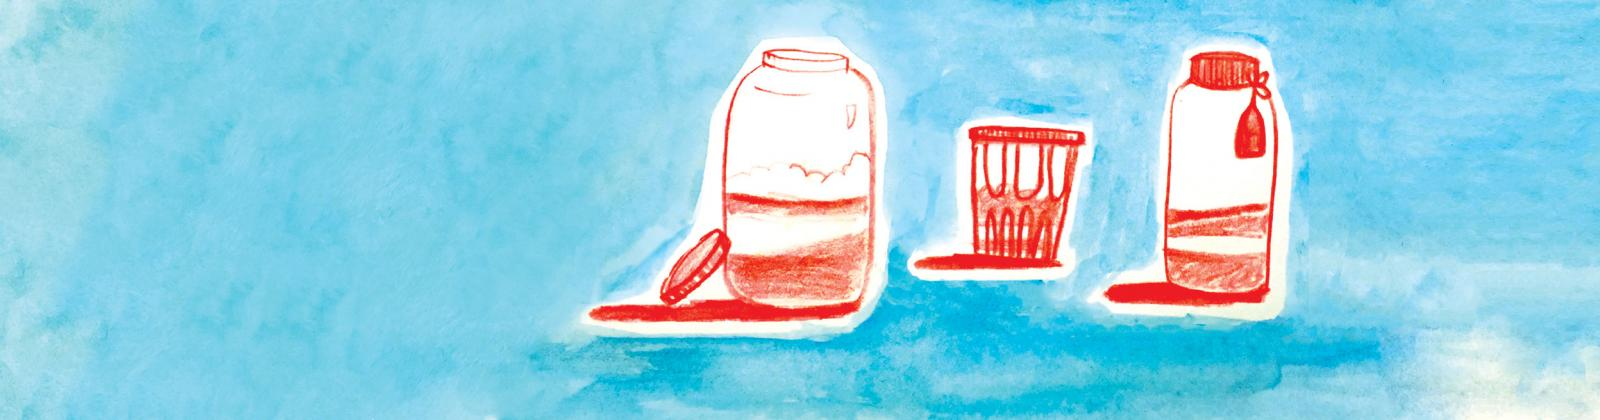 Illustration of red jars on a blue background